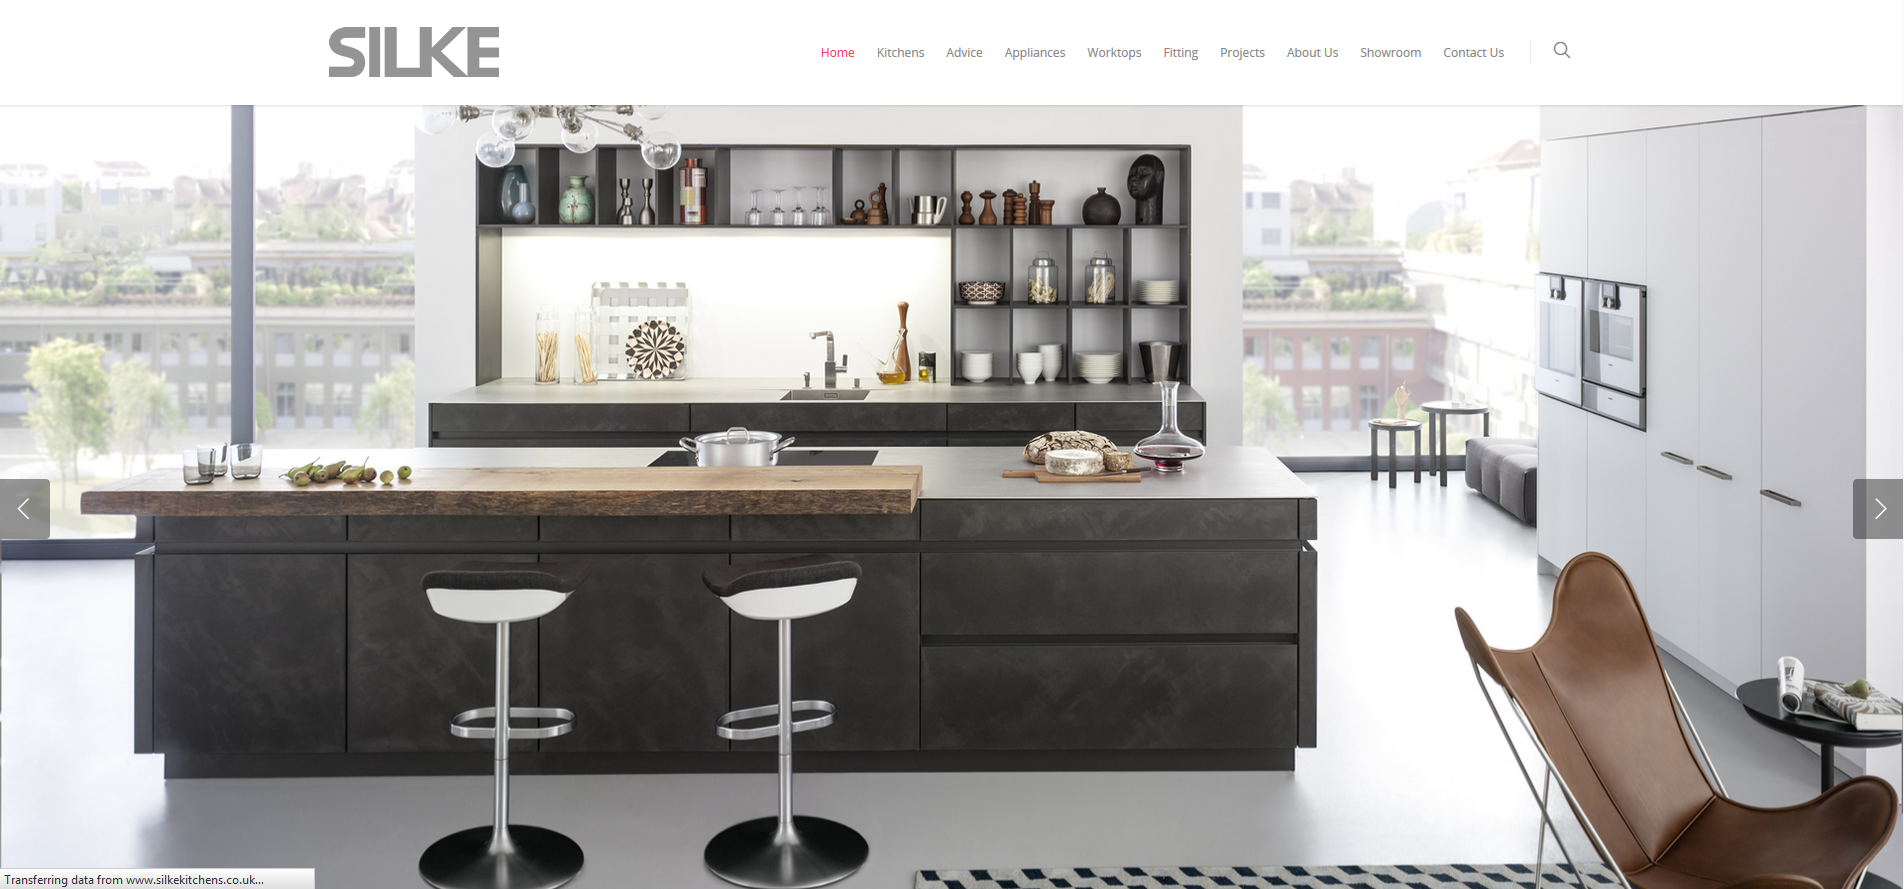 SILKE Website Design